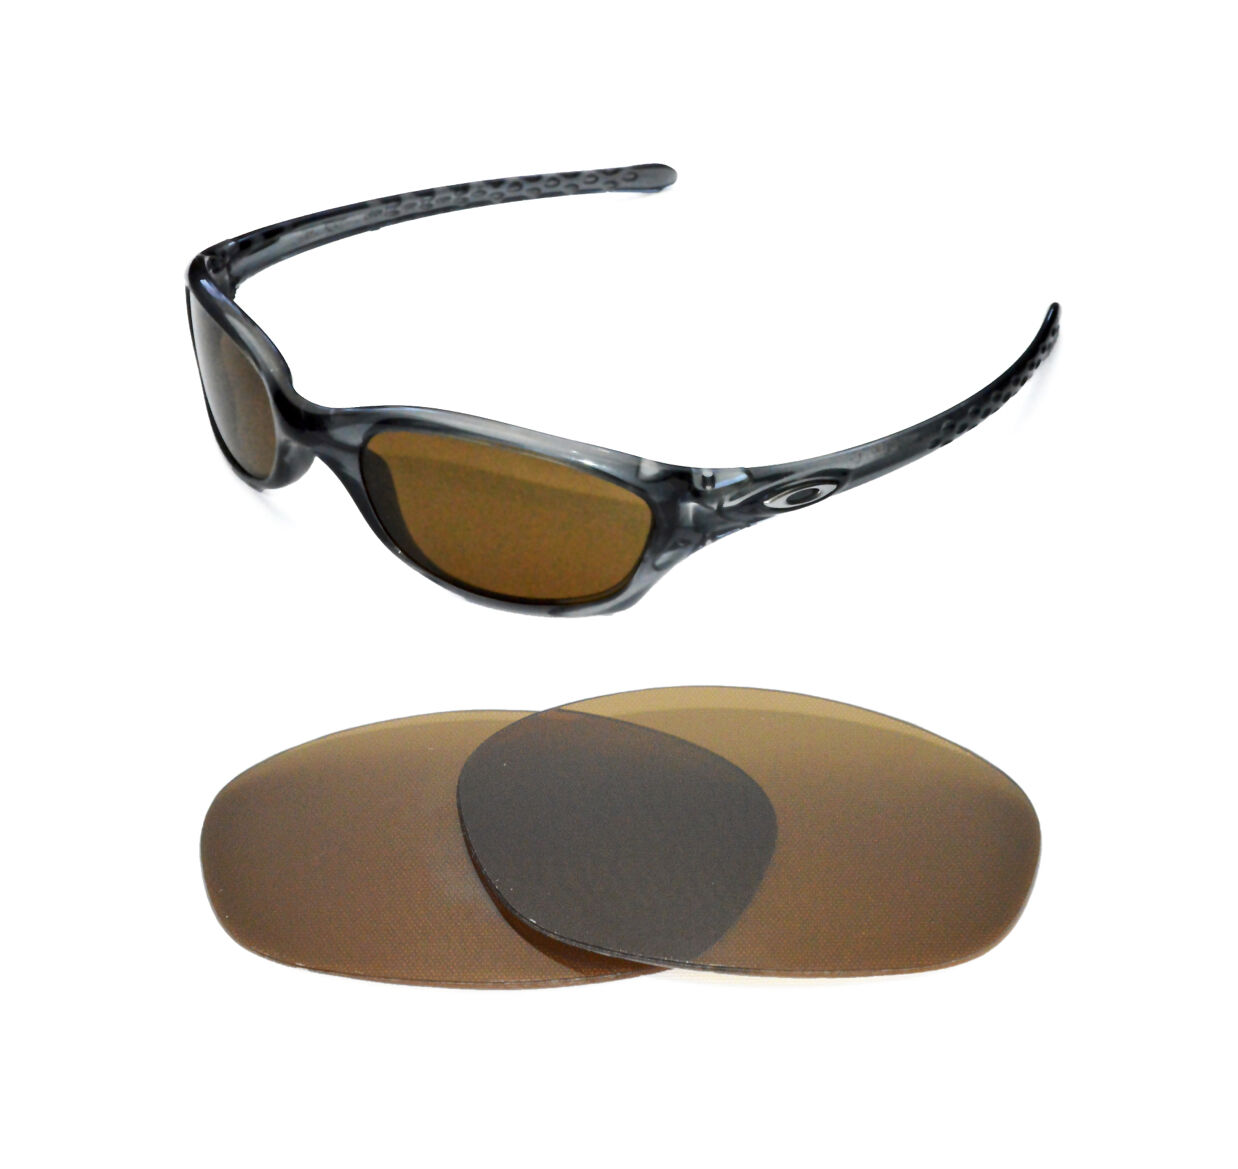 5e09f55a88 Details about NEW POLARIZED BRONZE REPLACEMENT LENS FOR OAKLEY FIVES 2.0  SUNGLASSES